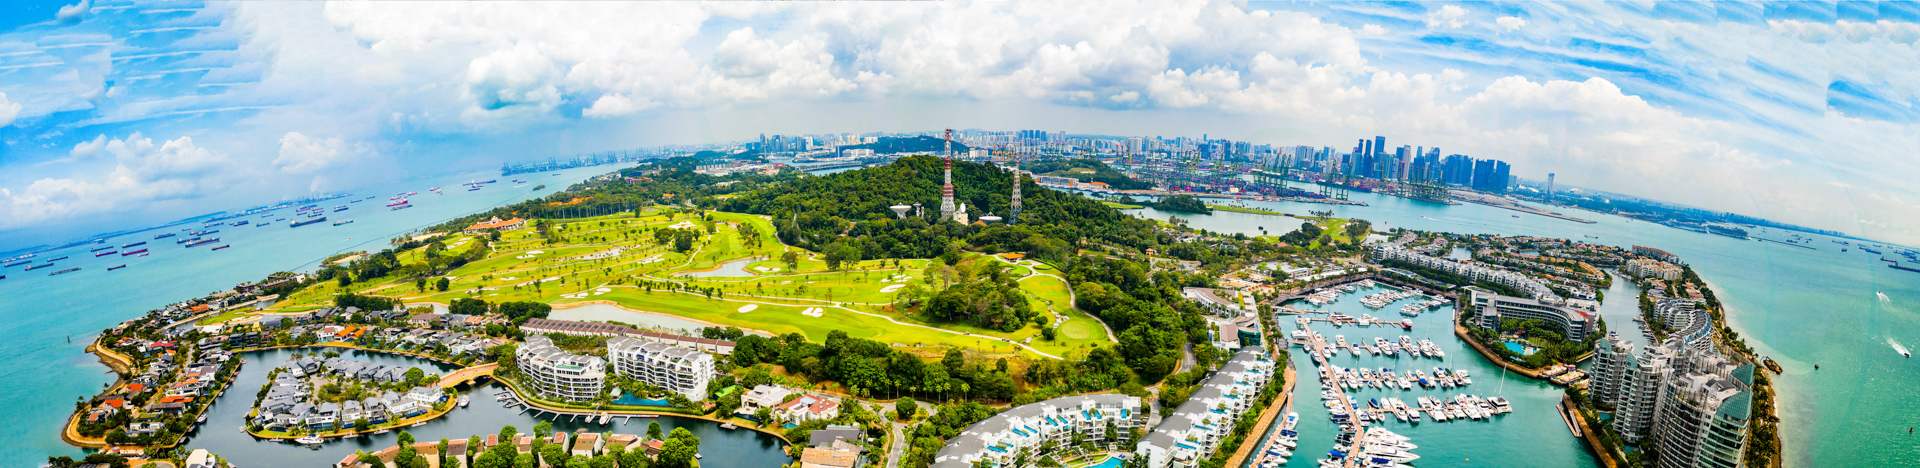 Sentosa Island Singapore – Panoramic Spherical View